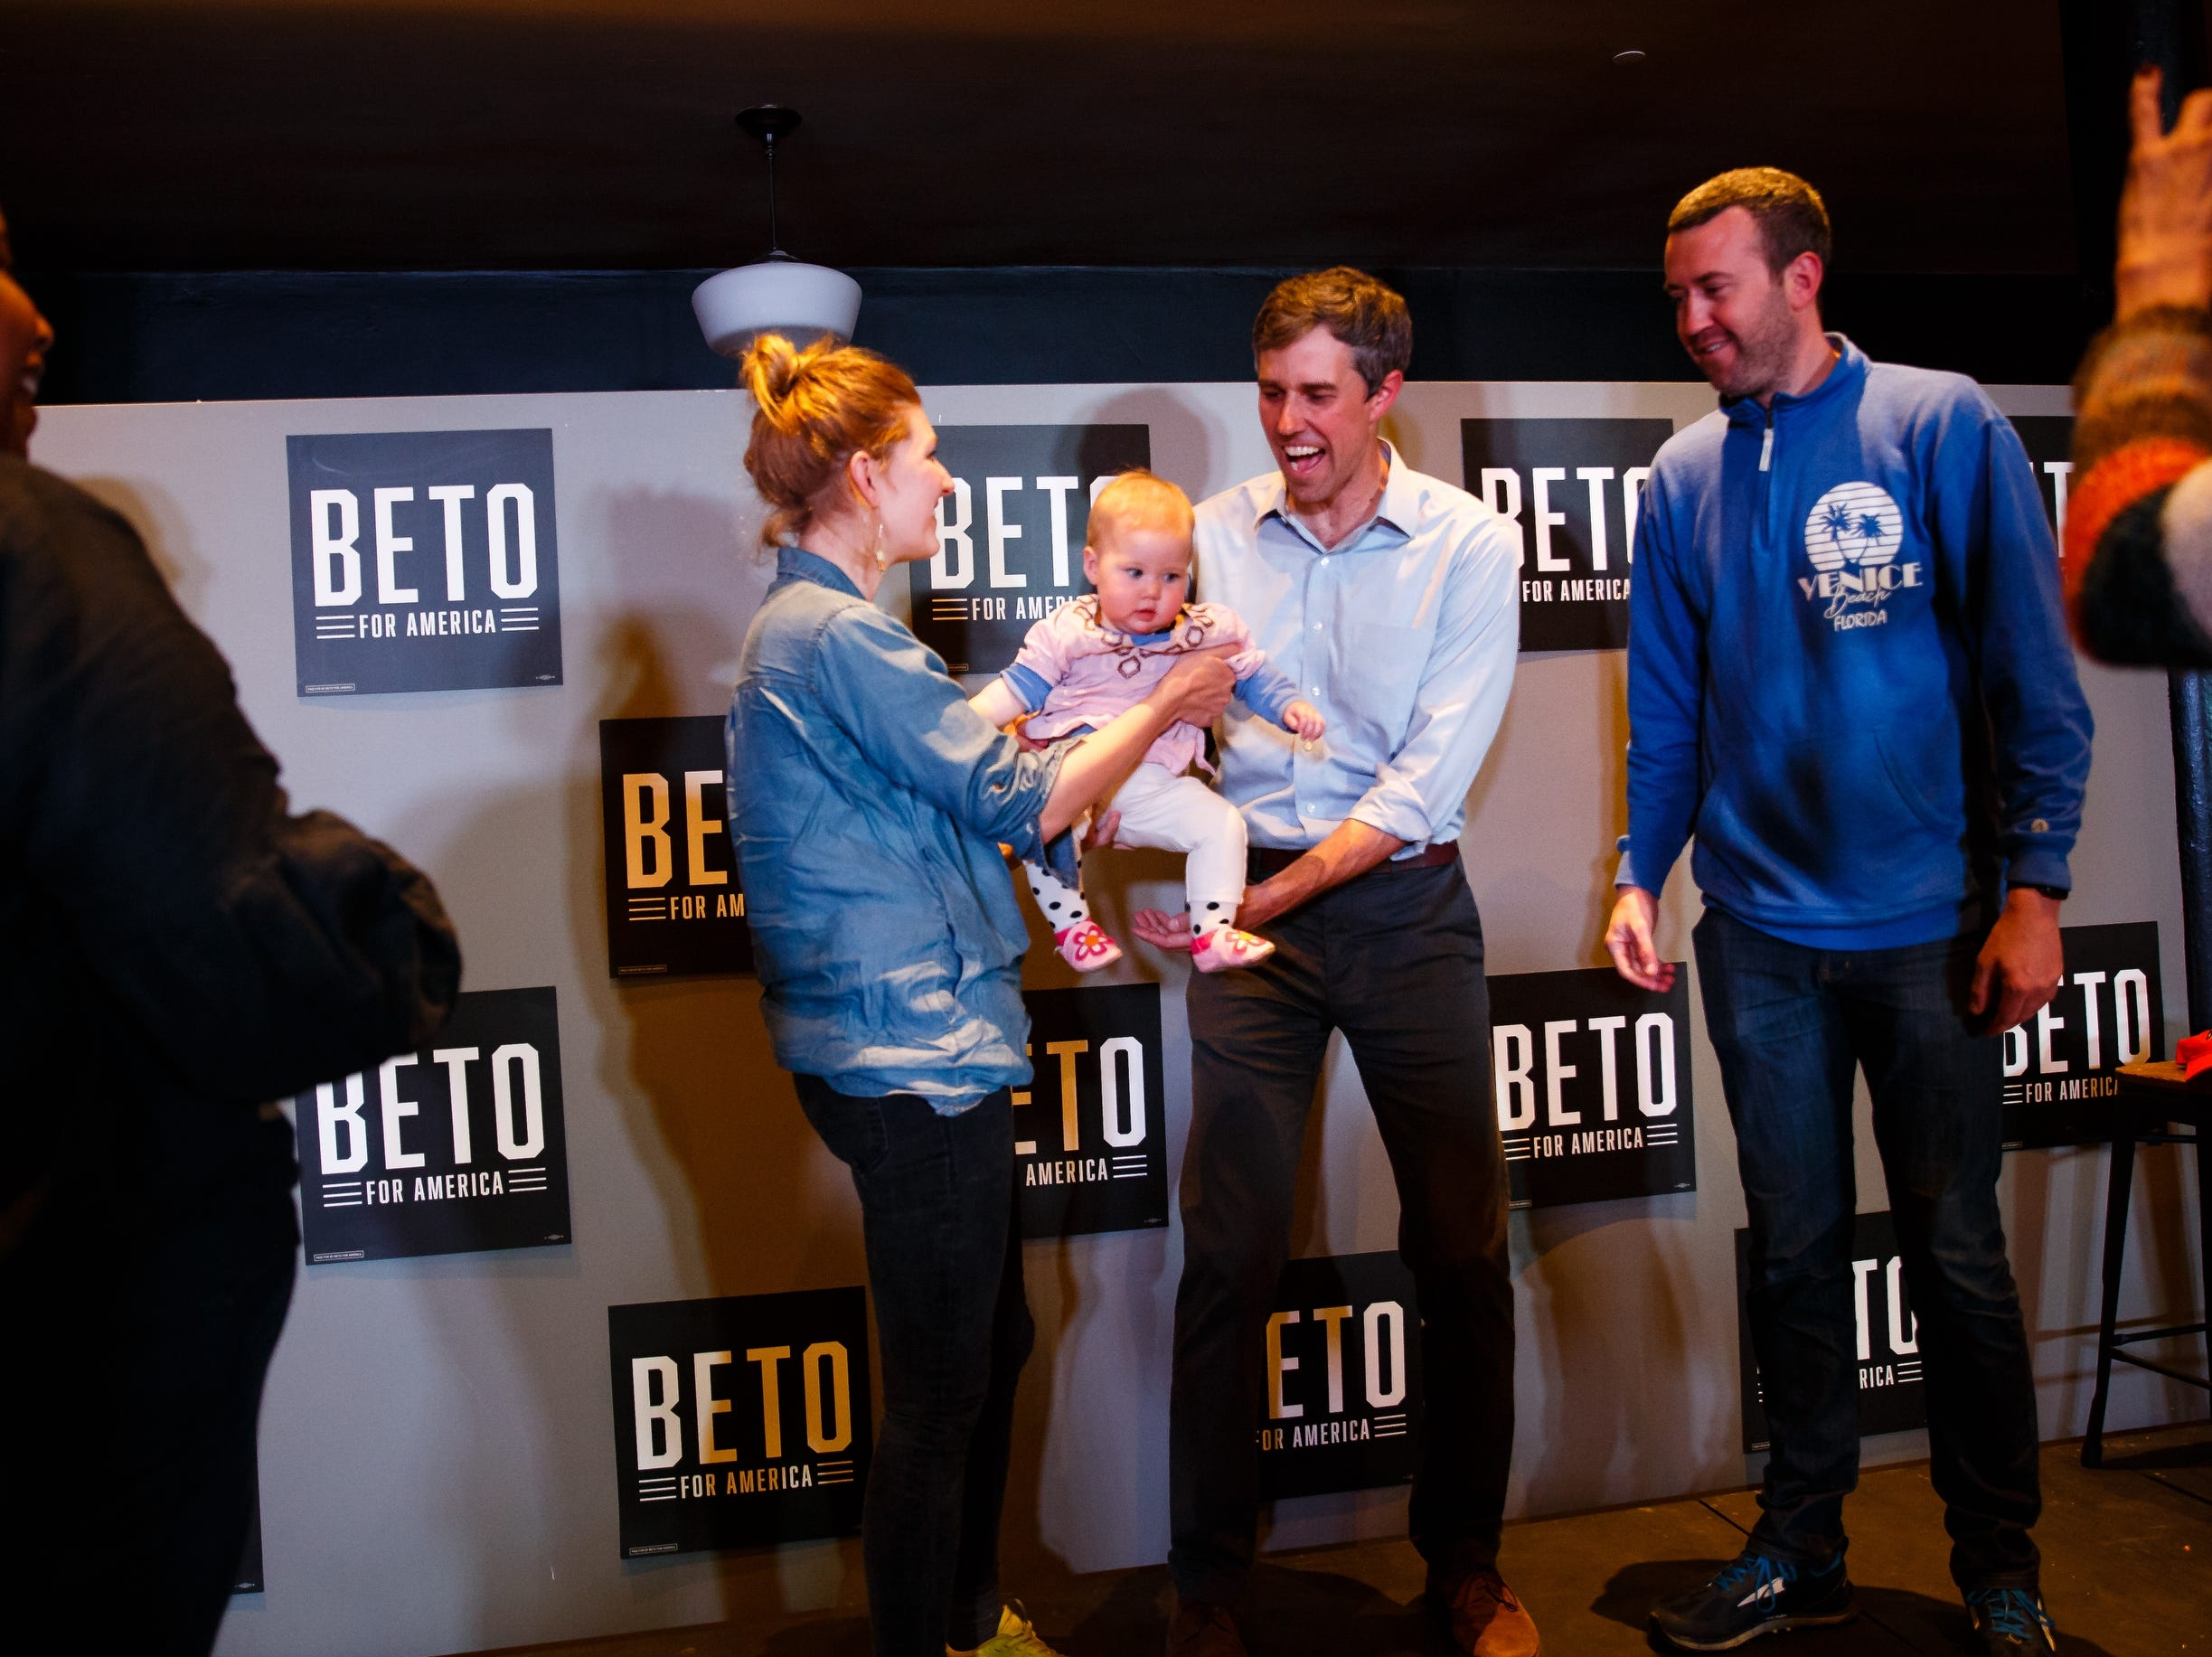 Carrie Ferguson, left, hands 2020 Democratic presidential candidate and former Texas Representative Beto O'Rourke her 7-month-old daughter Fleur as father Ryan looks on after hearing O'Rourke speak at Hotel Grinnell on Friday, April 5, 2019, in Grinnell.